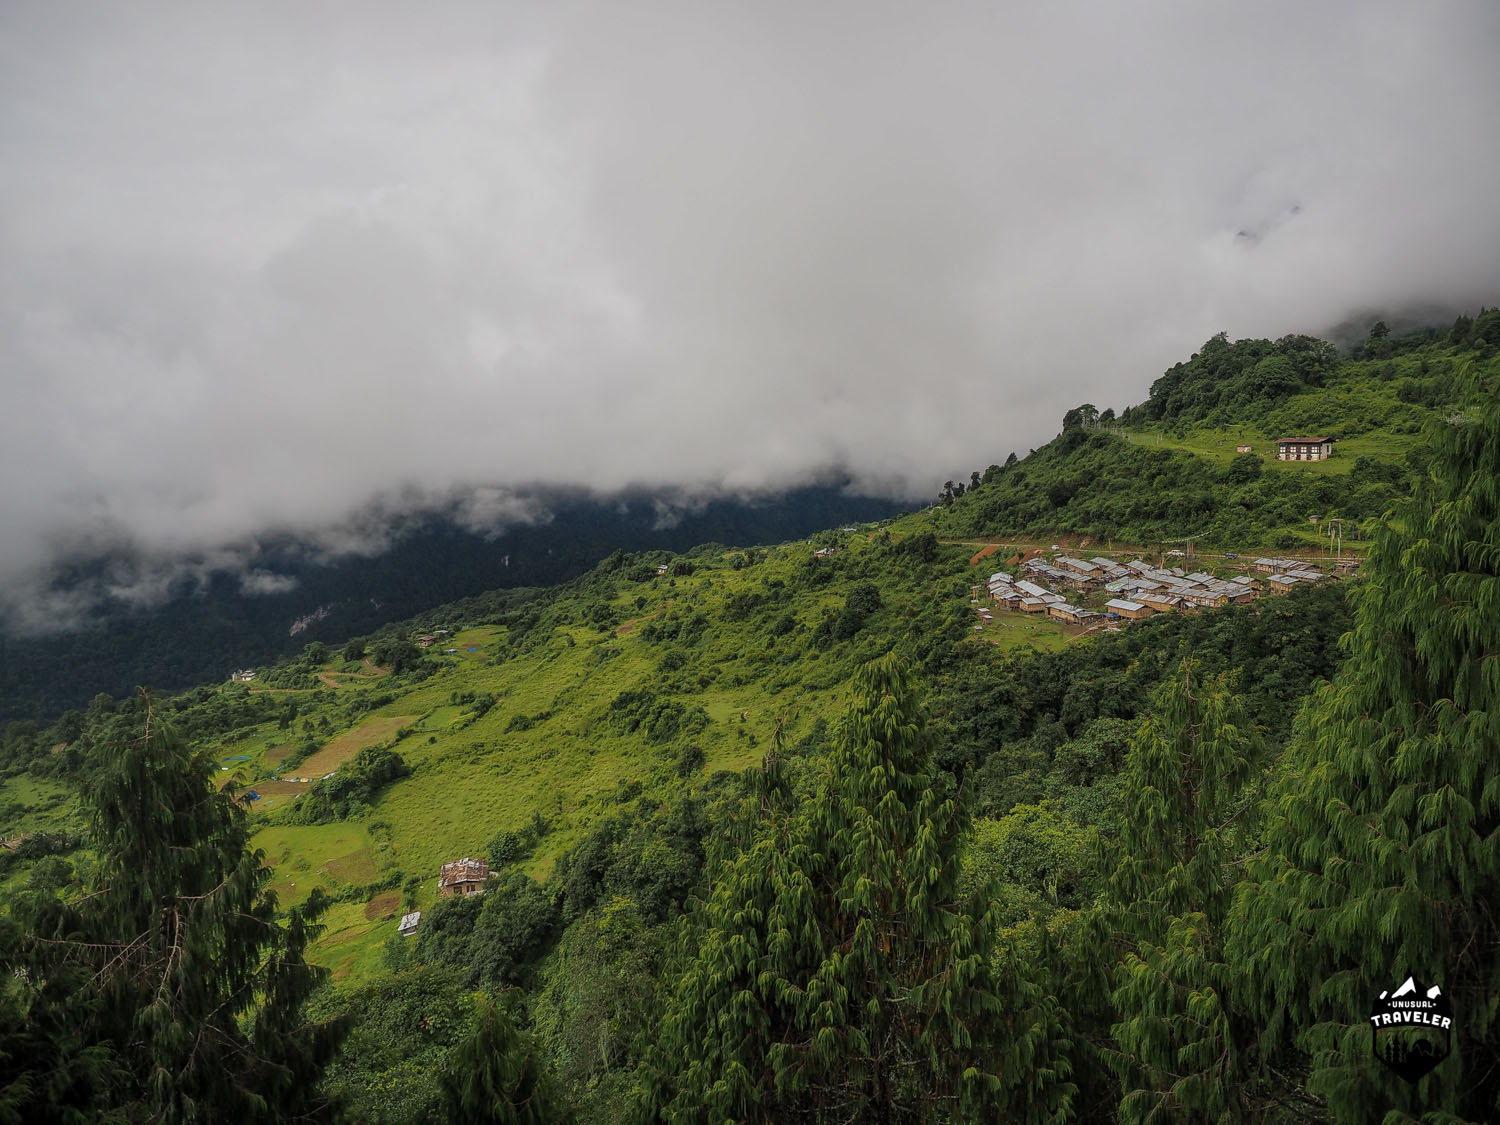 The view over the valley as seen from the Dzong